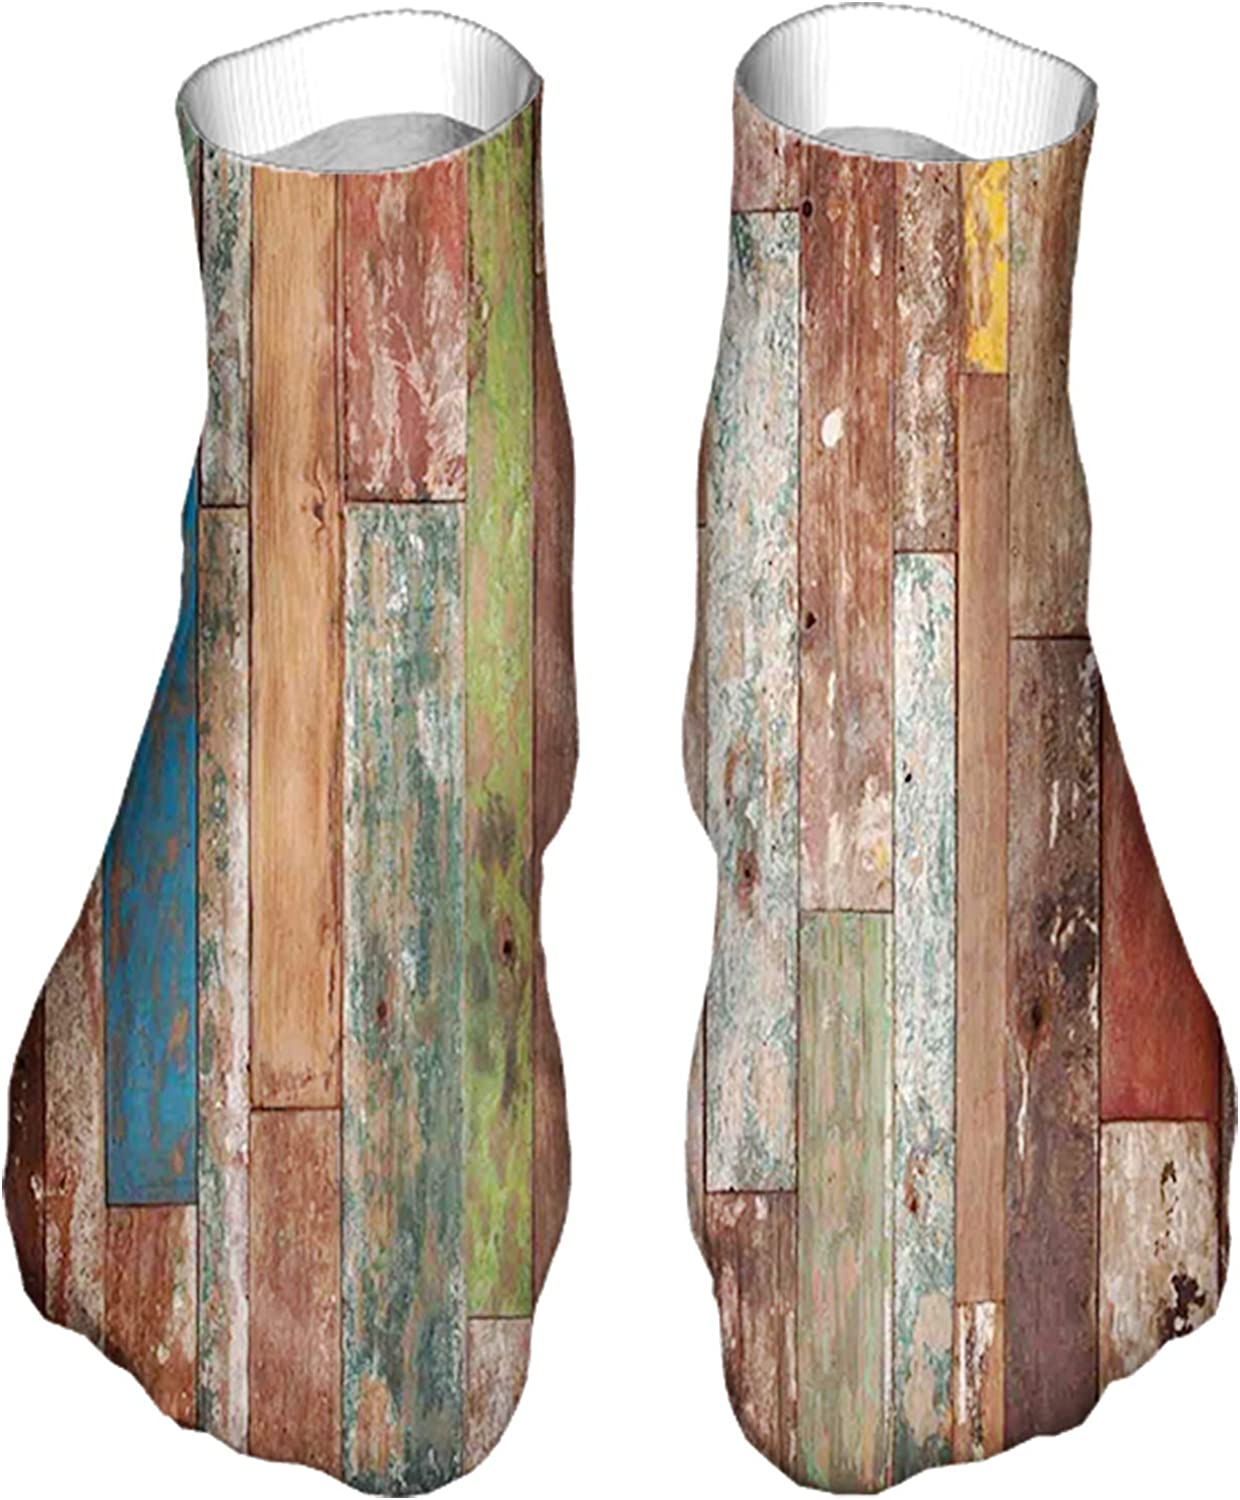 Women's Colorful Patterned Unisex Low Cut/No Show Socks,Grunge Style Planks Print Weathered Old Look Vintage